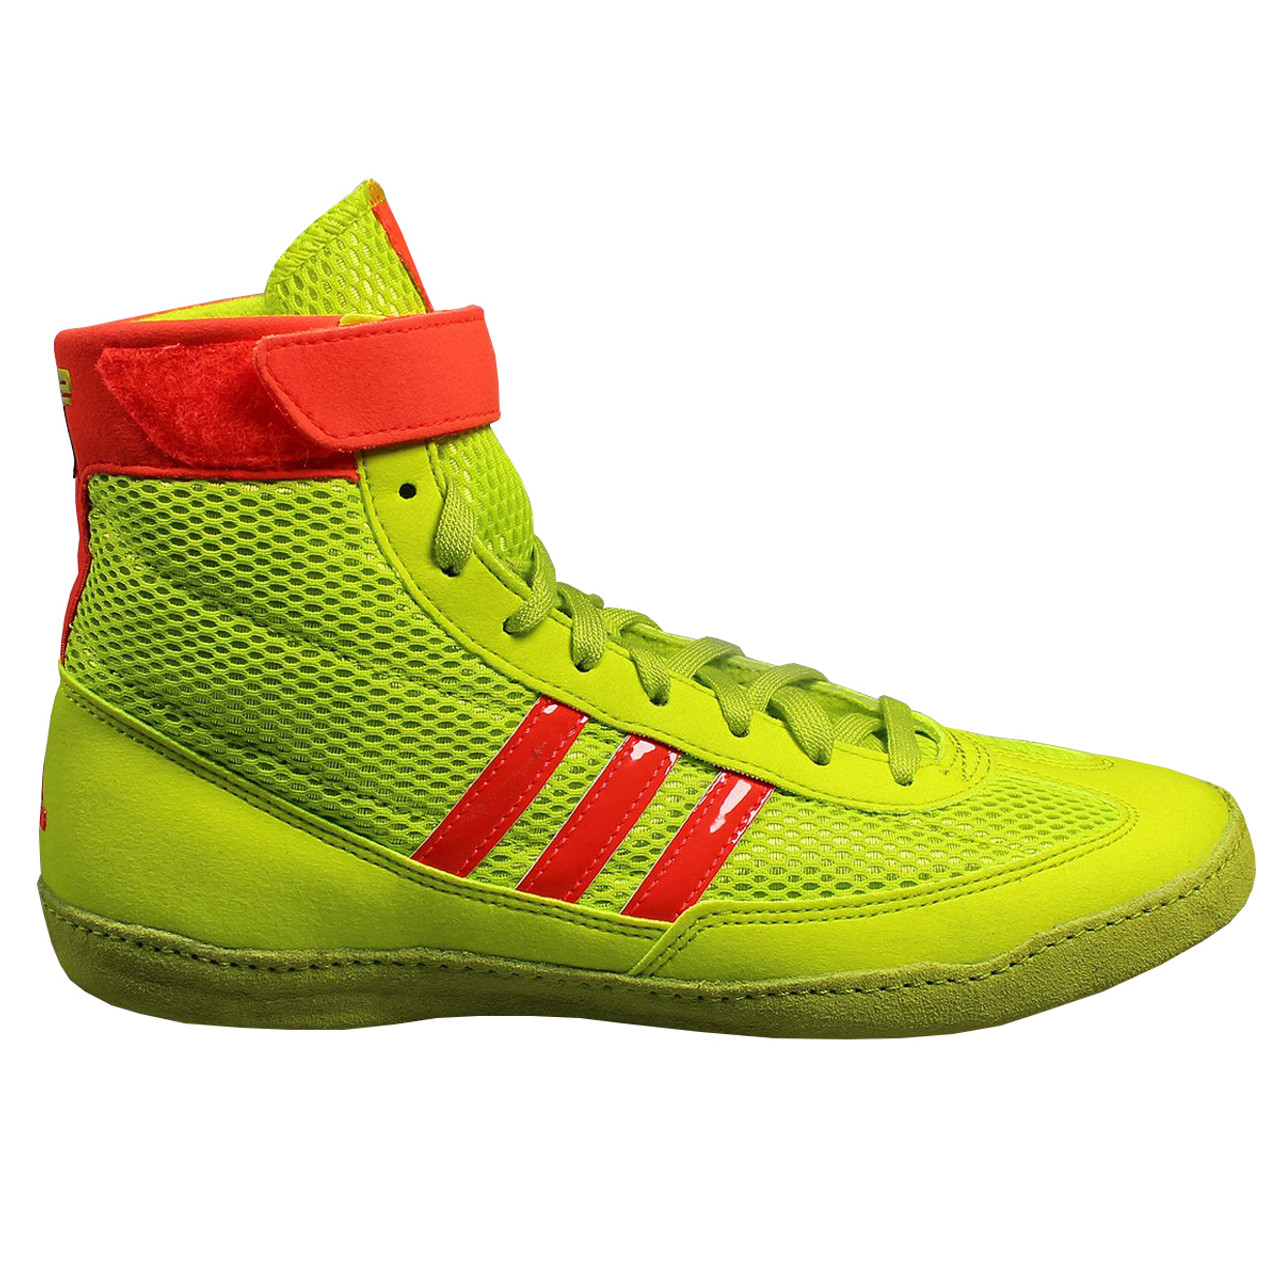 info for fc212 99945 Adidas Combat Speed 4 Senior Wrestling Shoes B40609 - Yellow, Red, Gum ...